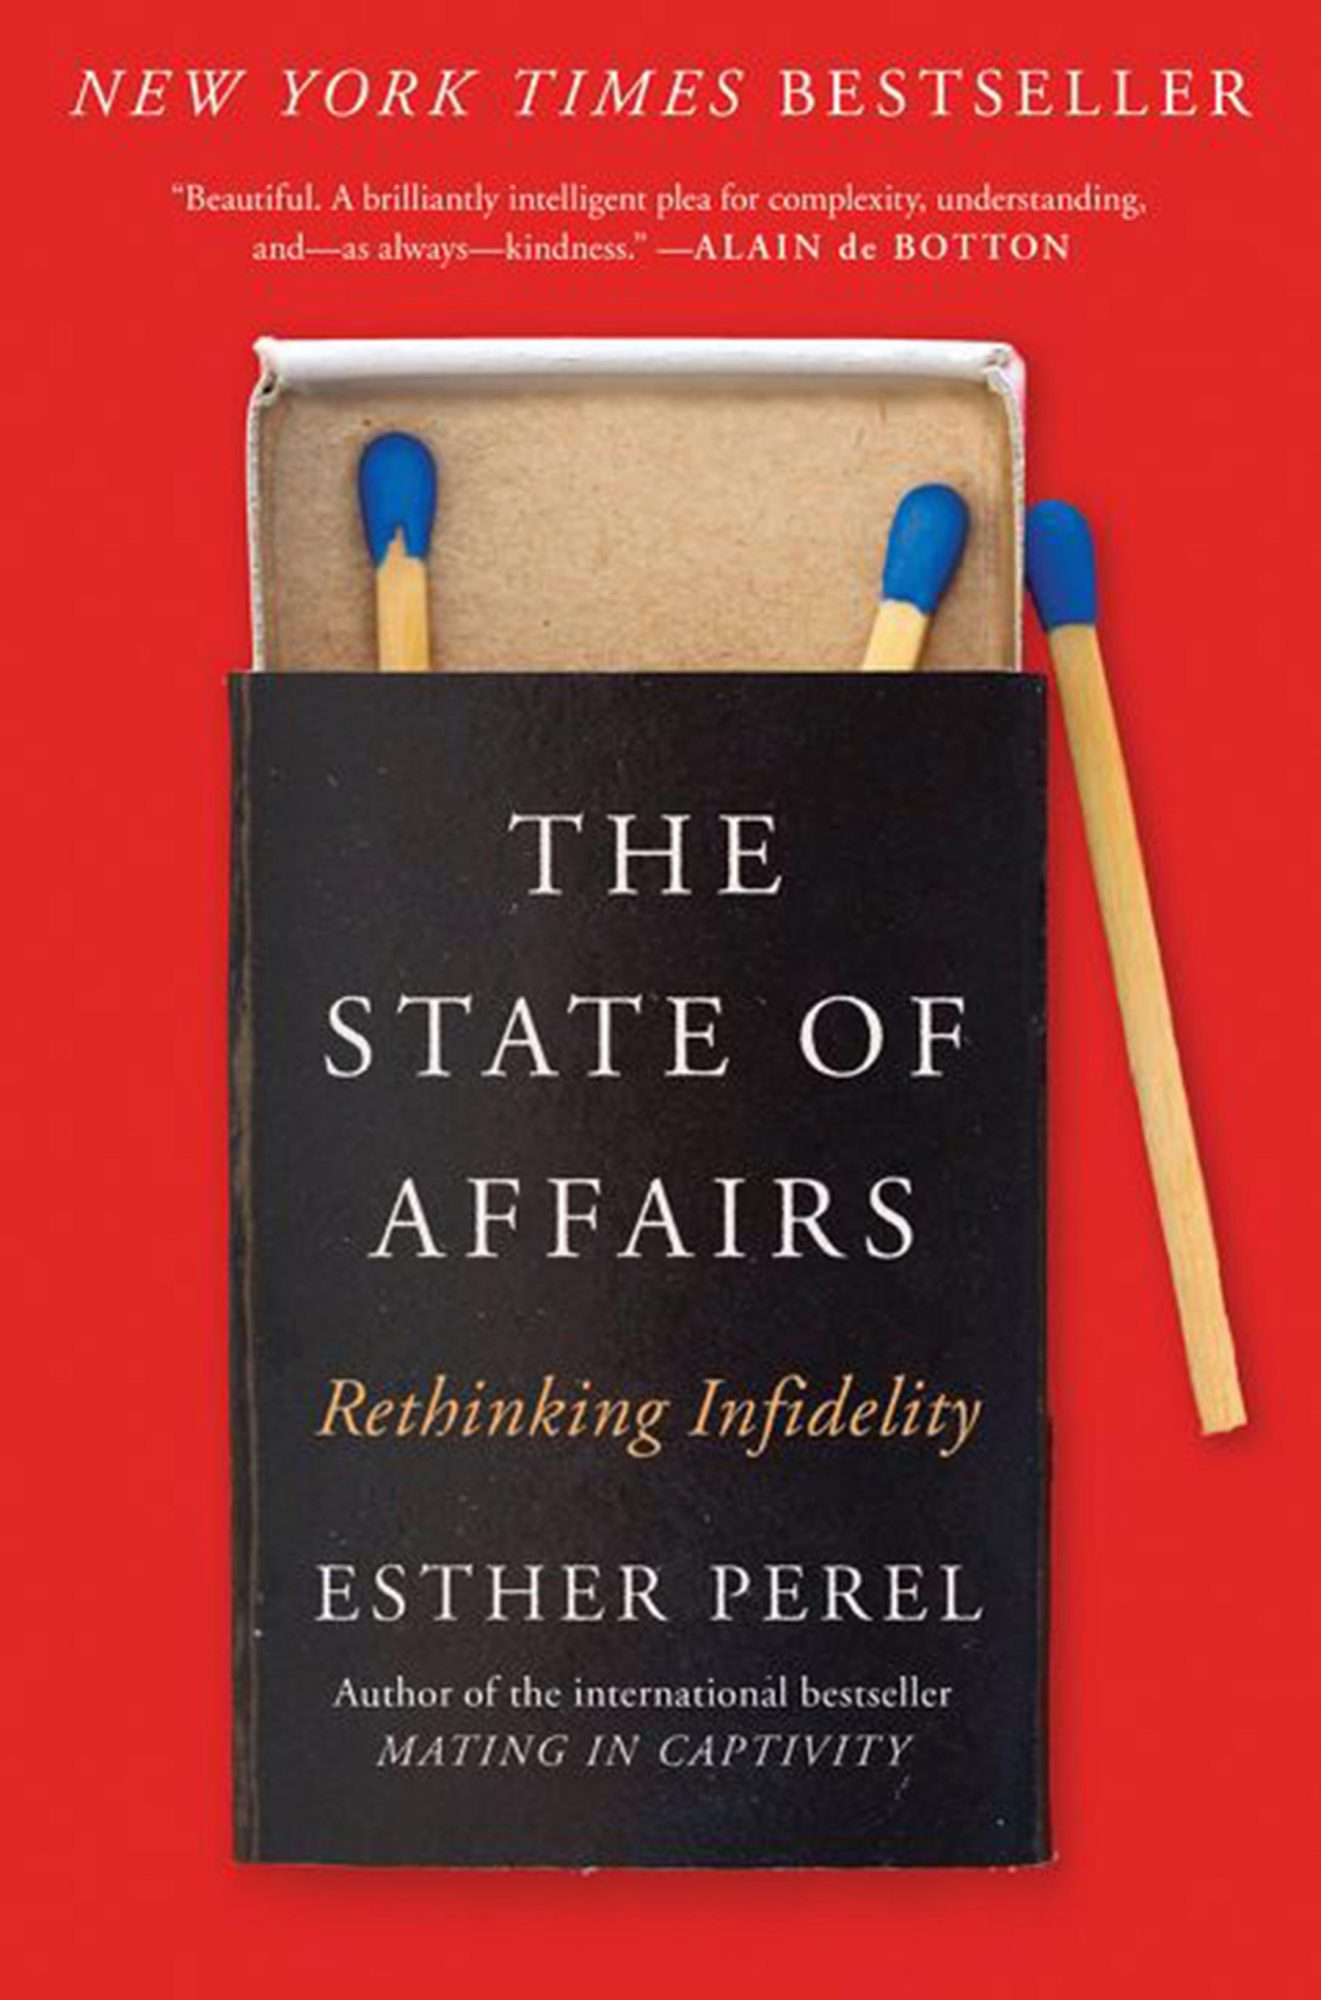 The-State-of-Affairs-by-Esther-Perel-